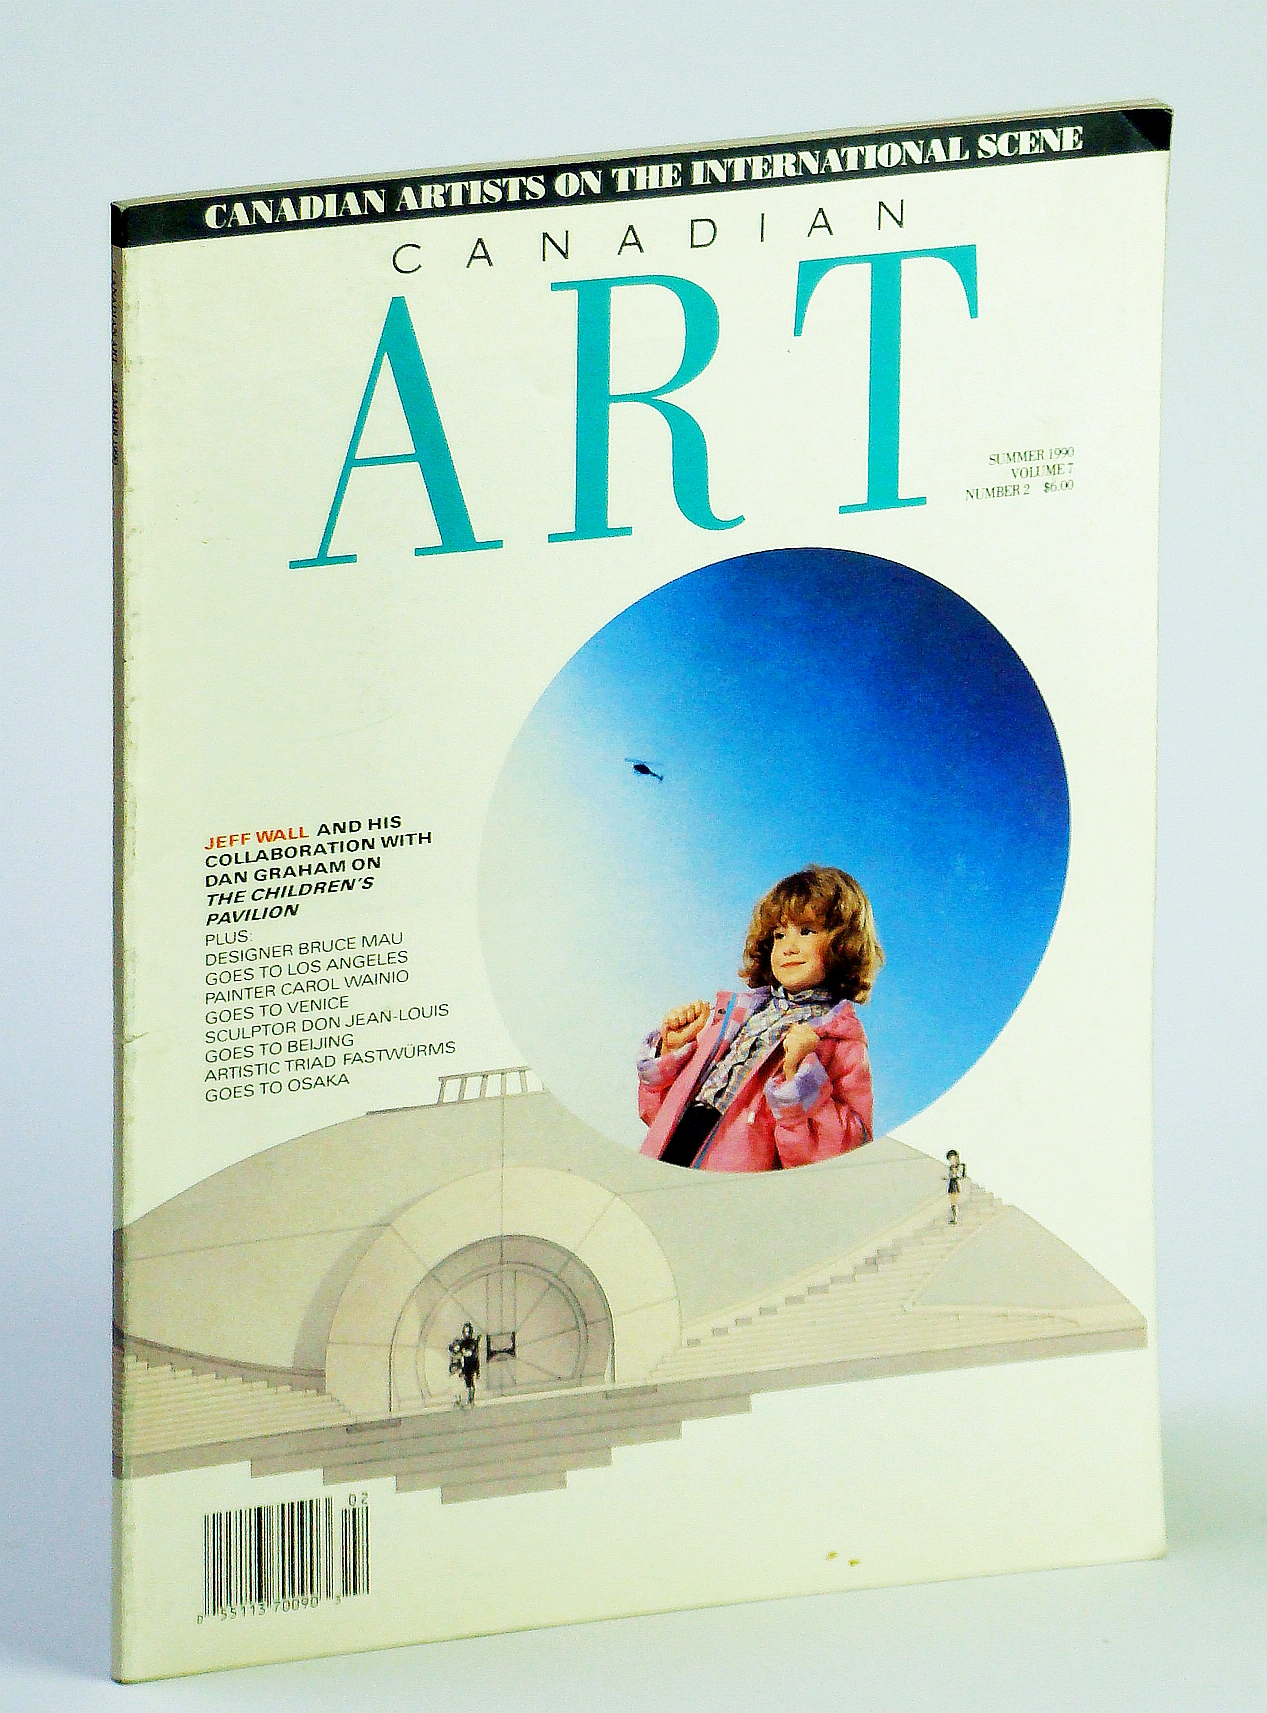 Image for Canadian Art (Magazine), Summer 1990, Volume 7, Number 2 - Canadian Artists on the International Scene / Bruce Mau